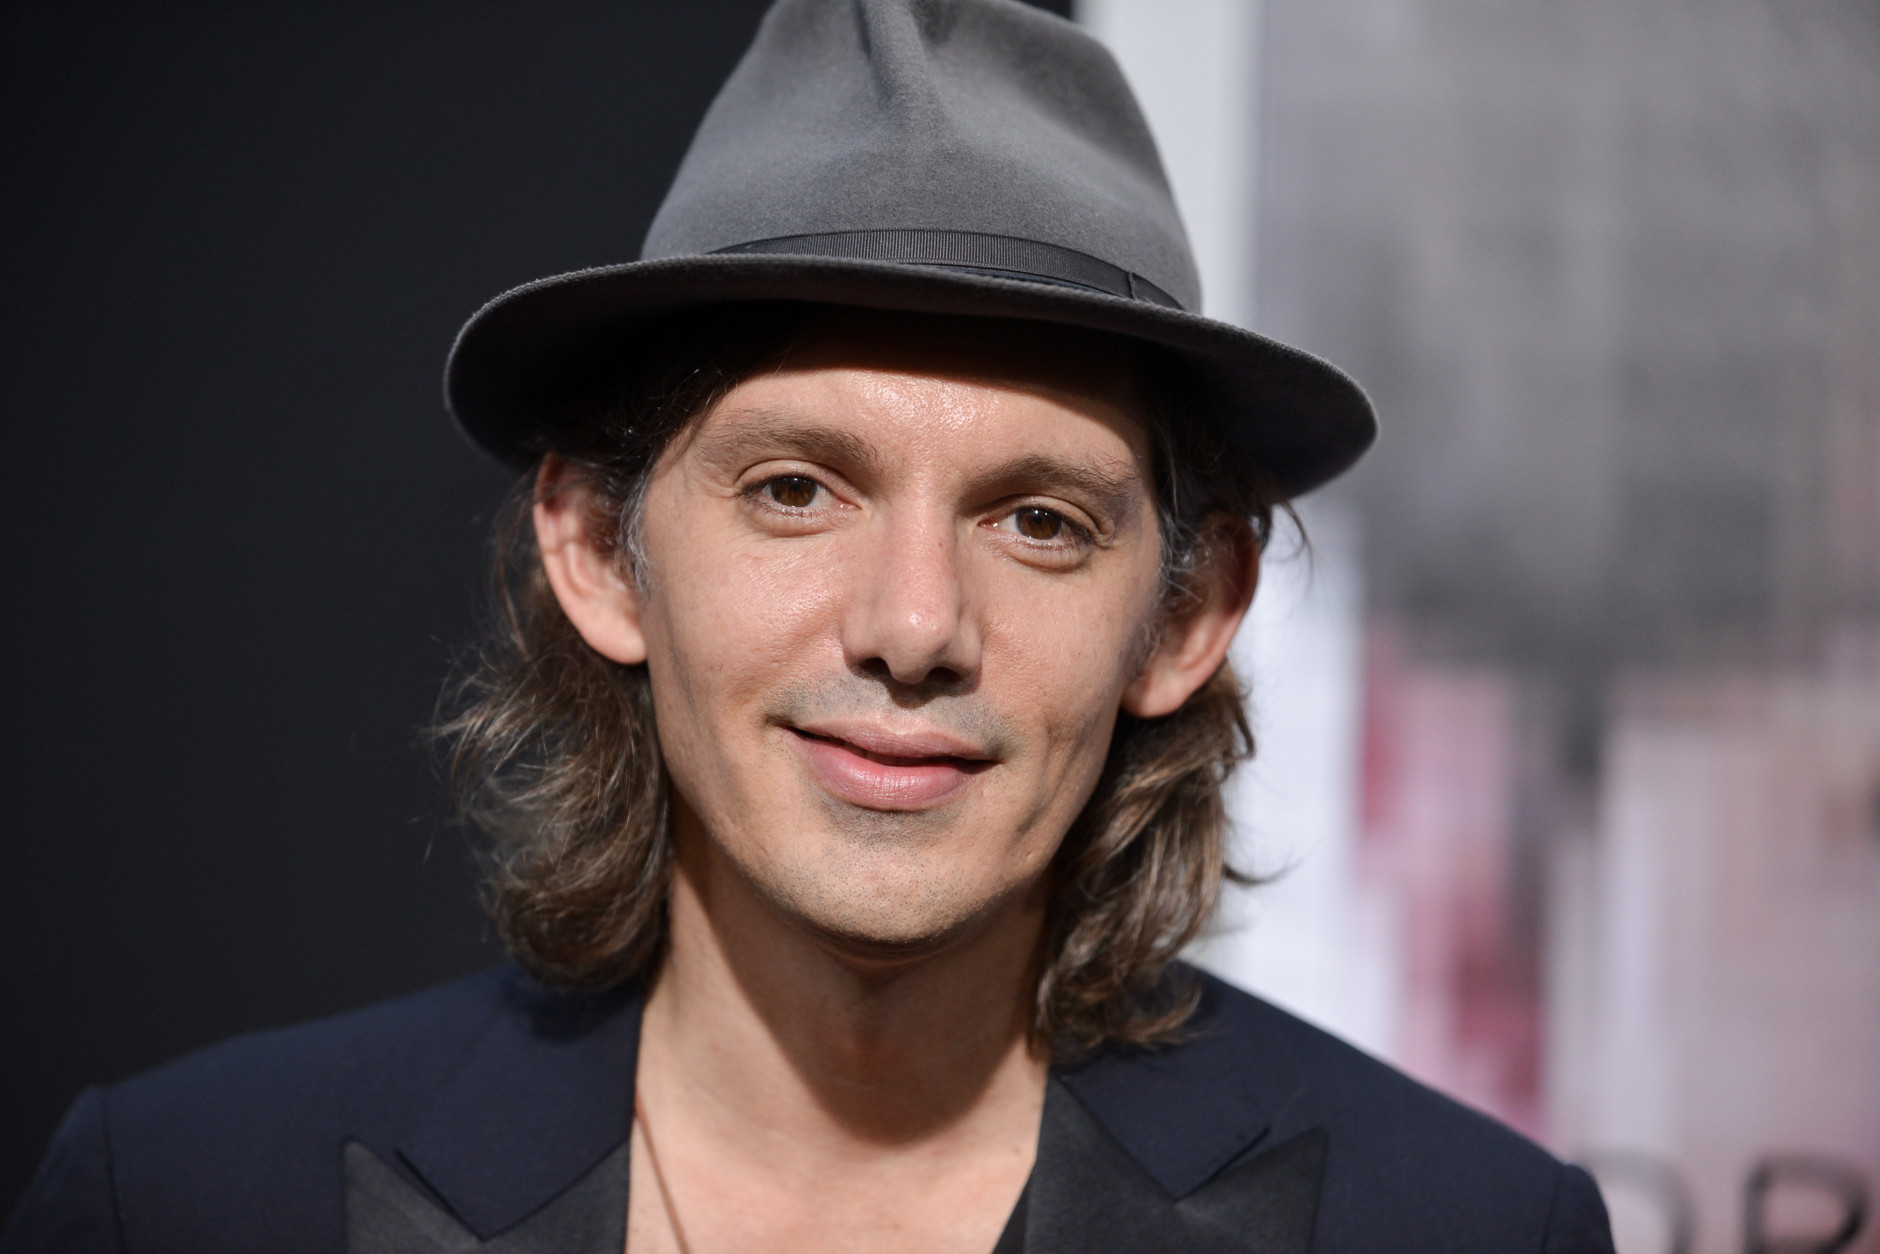 """Lukas Haas arrives at the LA Premiere  Of """"Transcendence"""" on Thursday, April 10, 2014, in Los Angeles. (Photo by Richard Shotwell/Invision/AP)"""